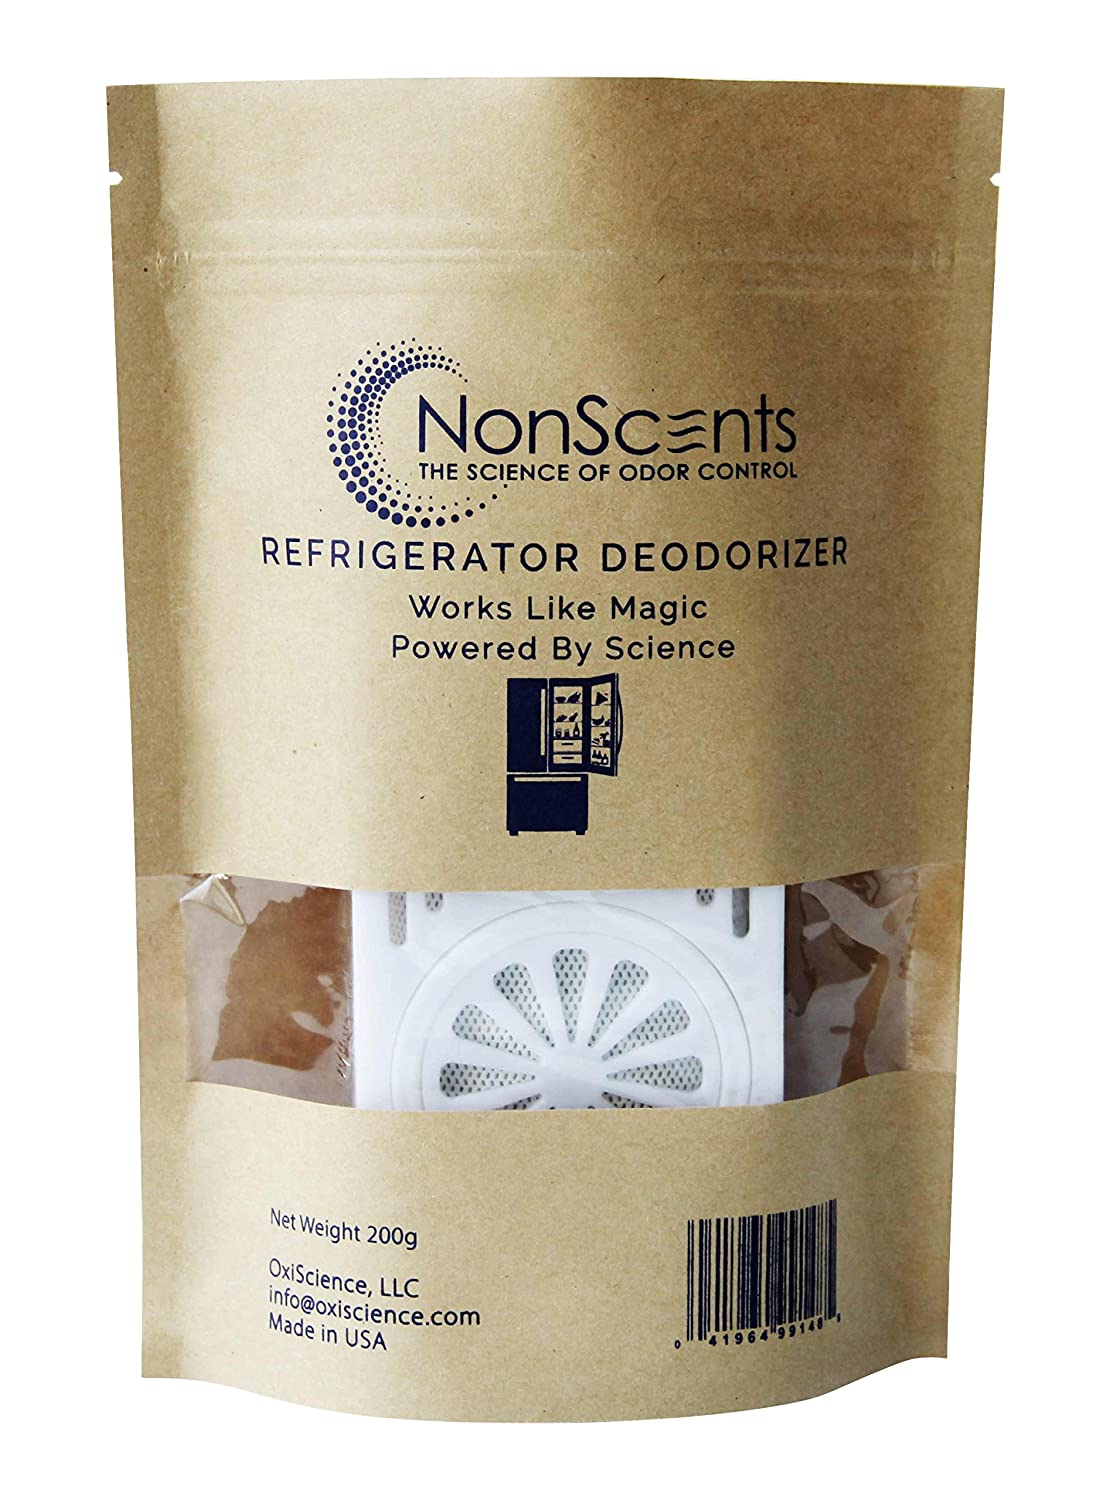 nonscents-refrigerator-deodorizer---lasts-up-to-6-months---removes-odor-fast---outperforms-baking-soda-&-charcoal by nonscents